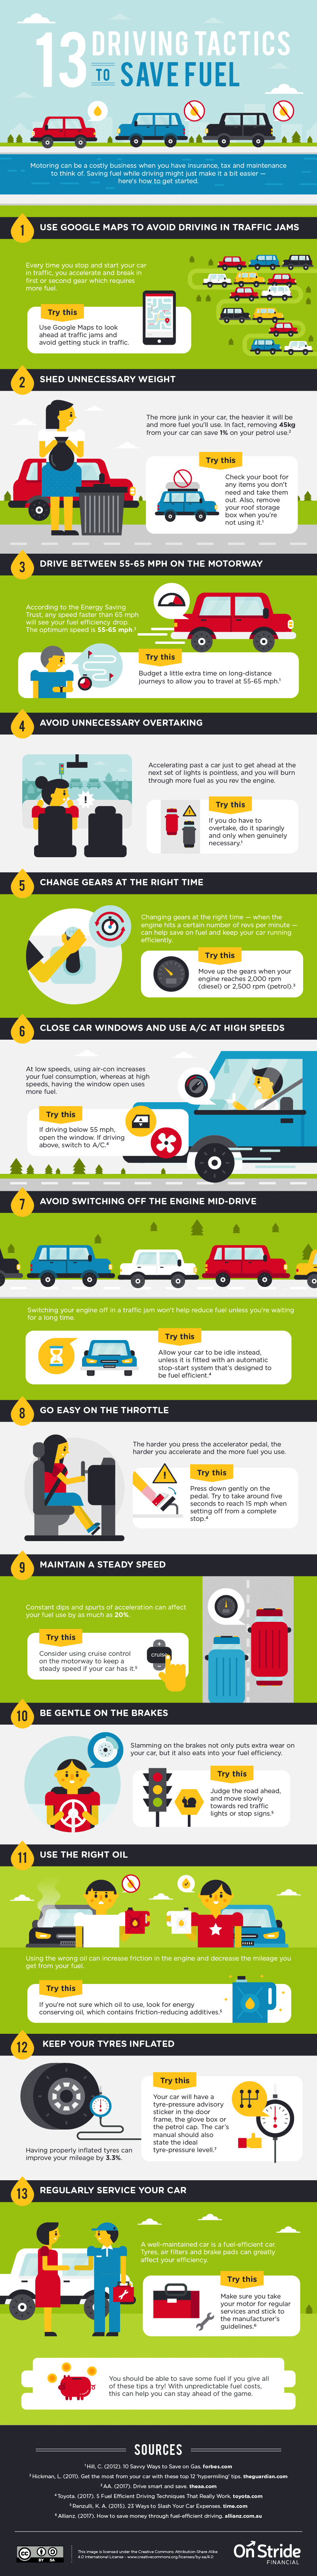 Driving techniques that boost your fleet fuel economy an interesting infographic 2.png